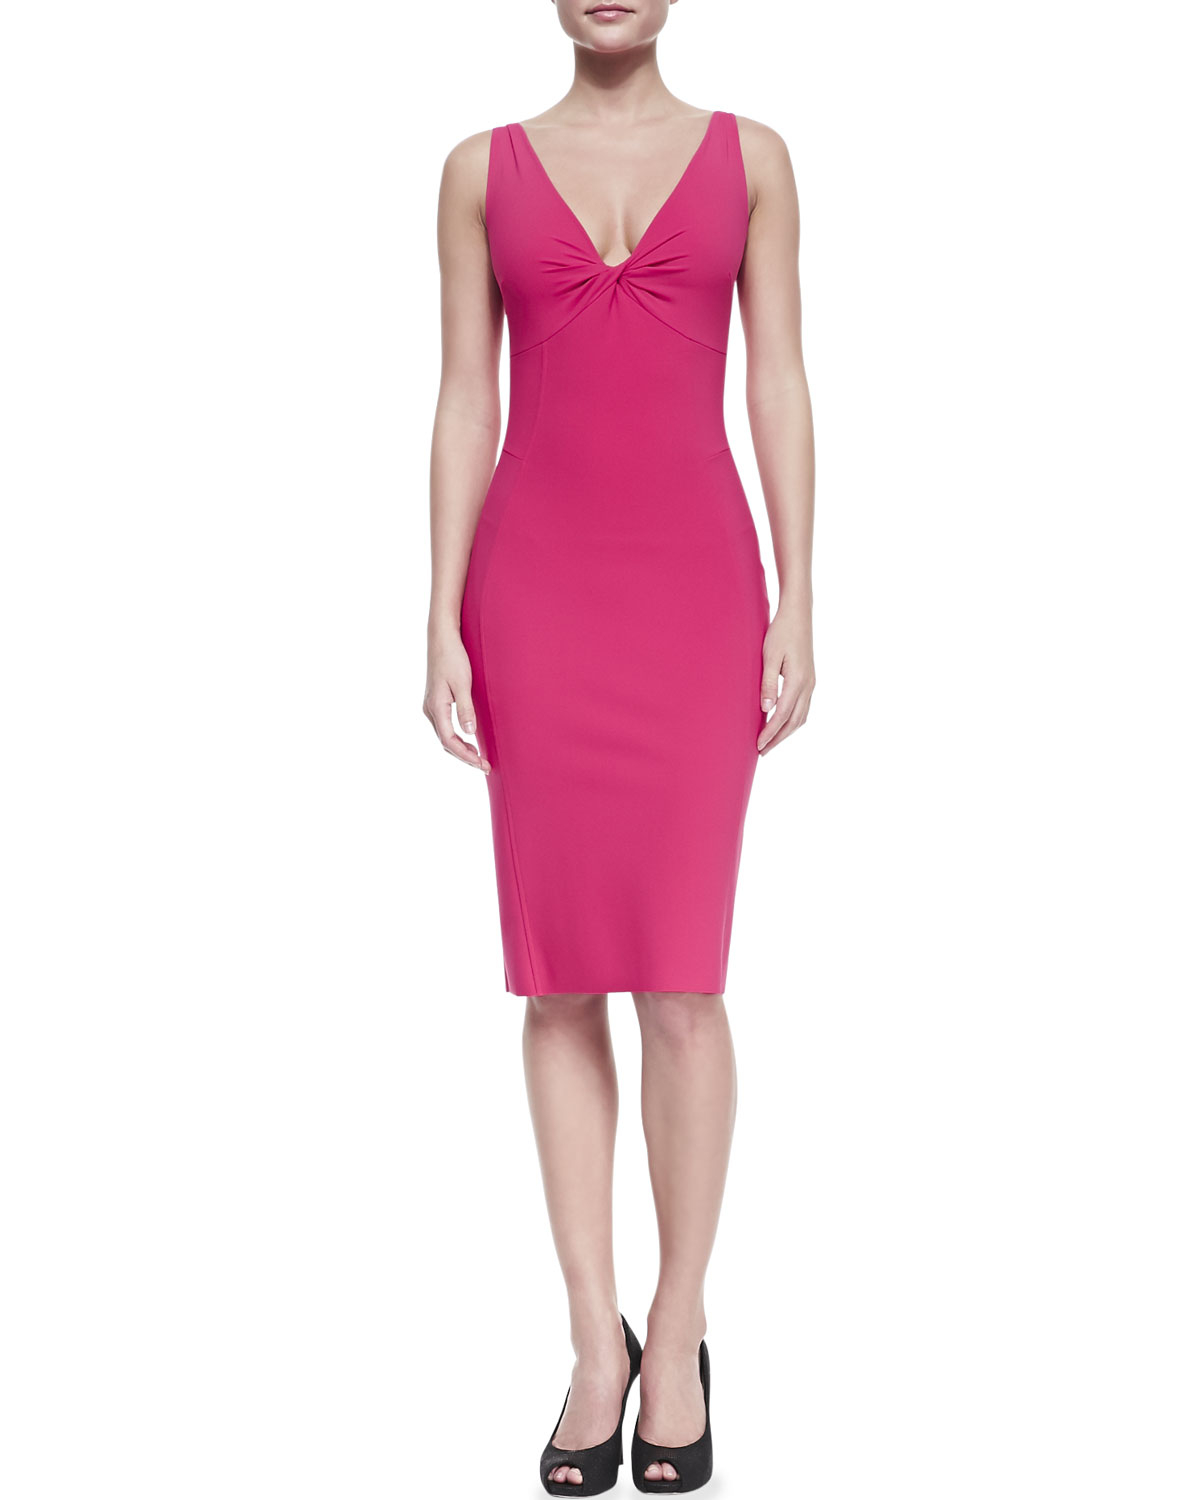 la petite robe di chiara boni sleeveless v neck fitted cocktail dress in pink lyst. Black Bedroom Furniture Sets. Home Design Ideas